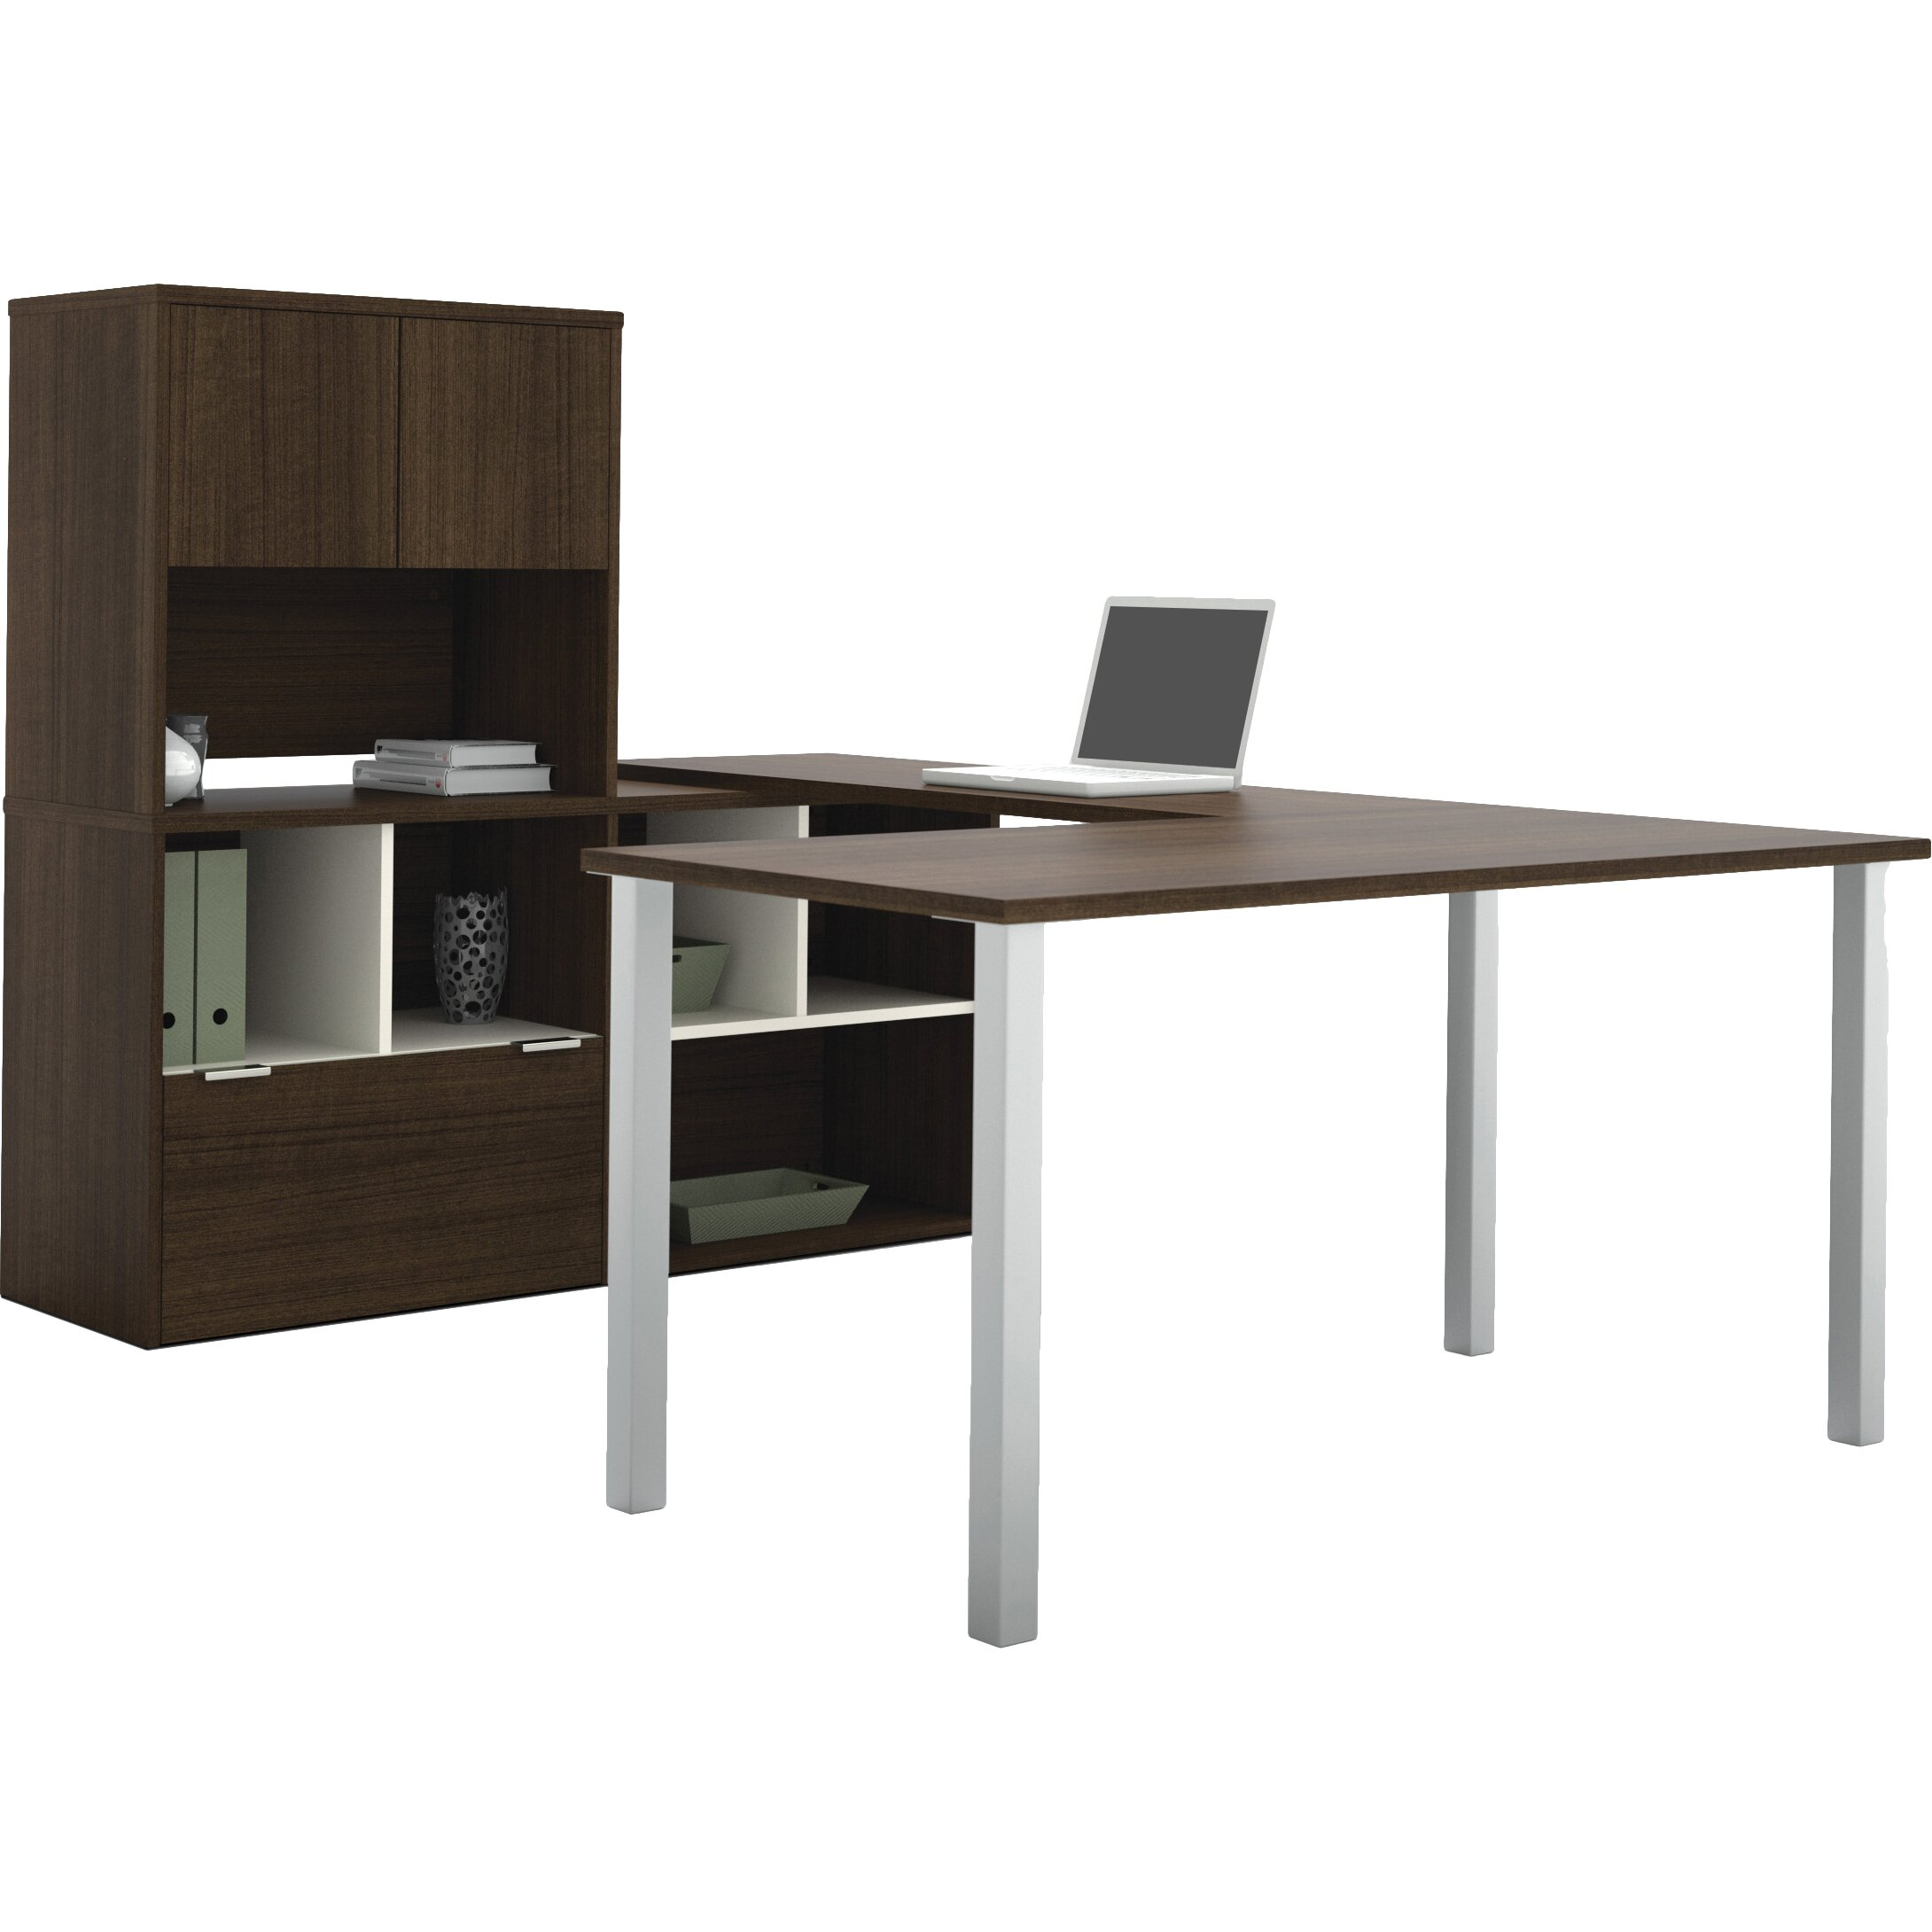 writing desk with storage This writing desk has ample space to organize your supplies and is ideal for small spaces it features a work surface with an open storage shelf underneath for additional suppliessolid composite wood is laminated in double-faced durable espresso-wengue finished melamine, which is stain, heat and scratch resistant.